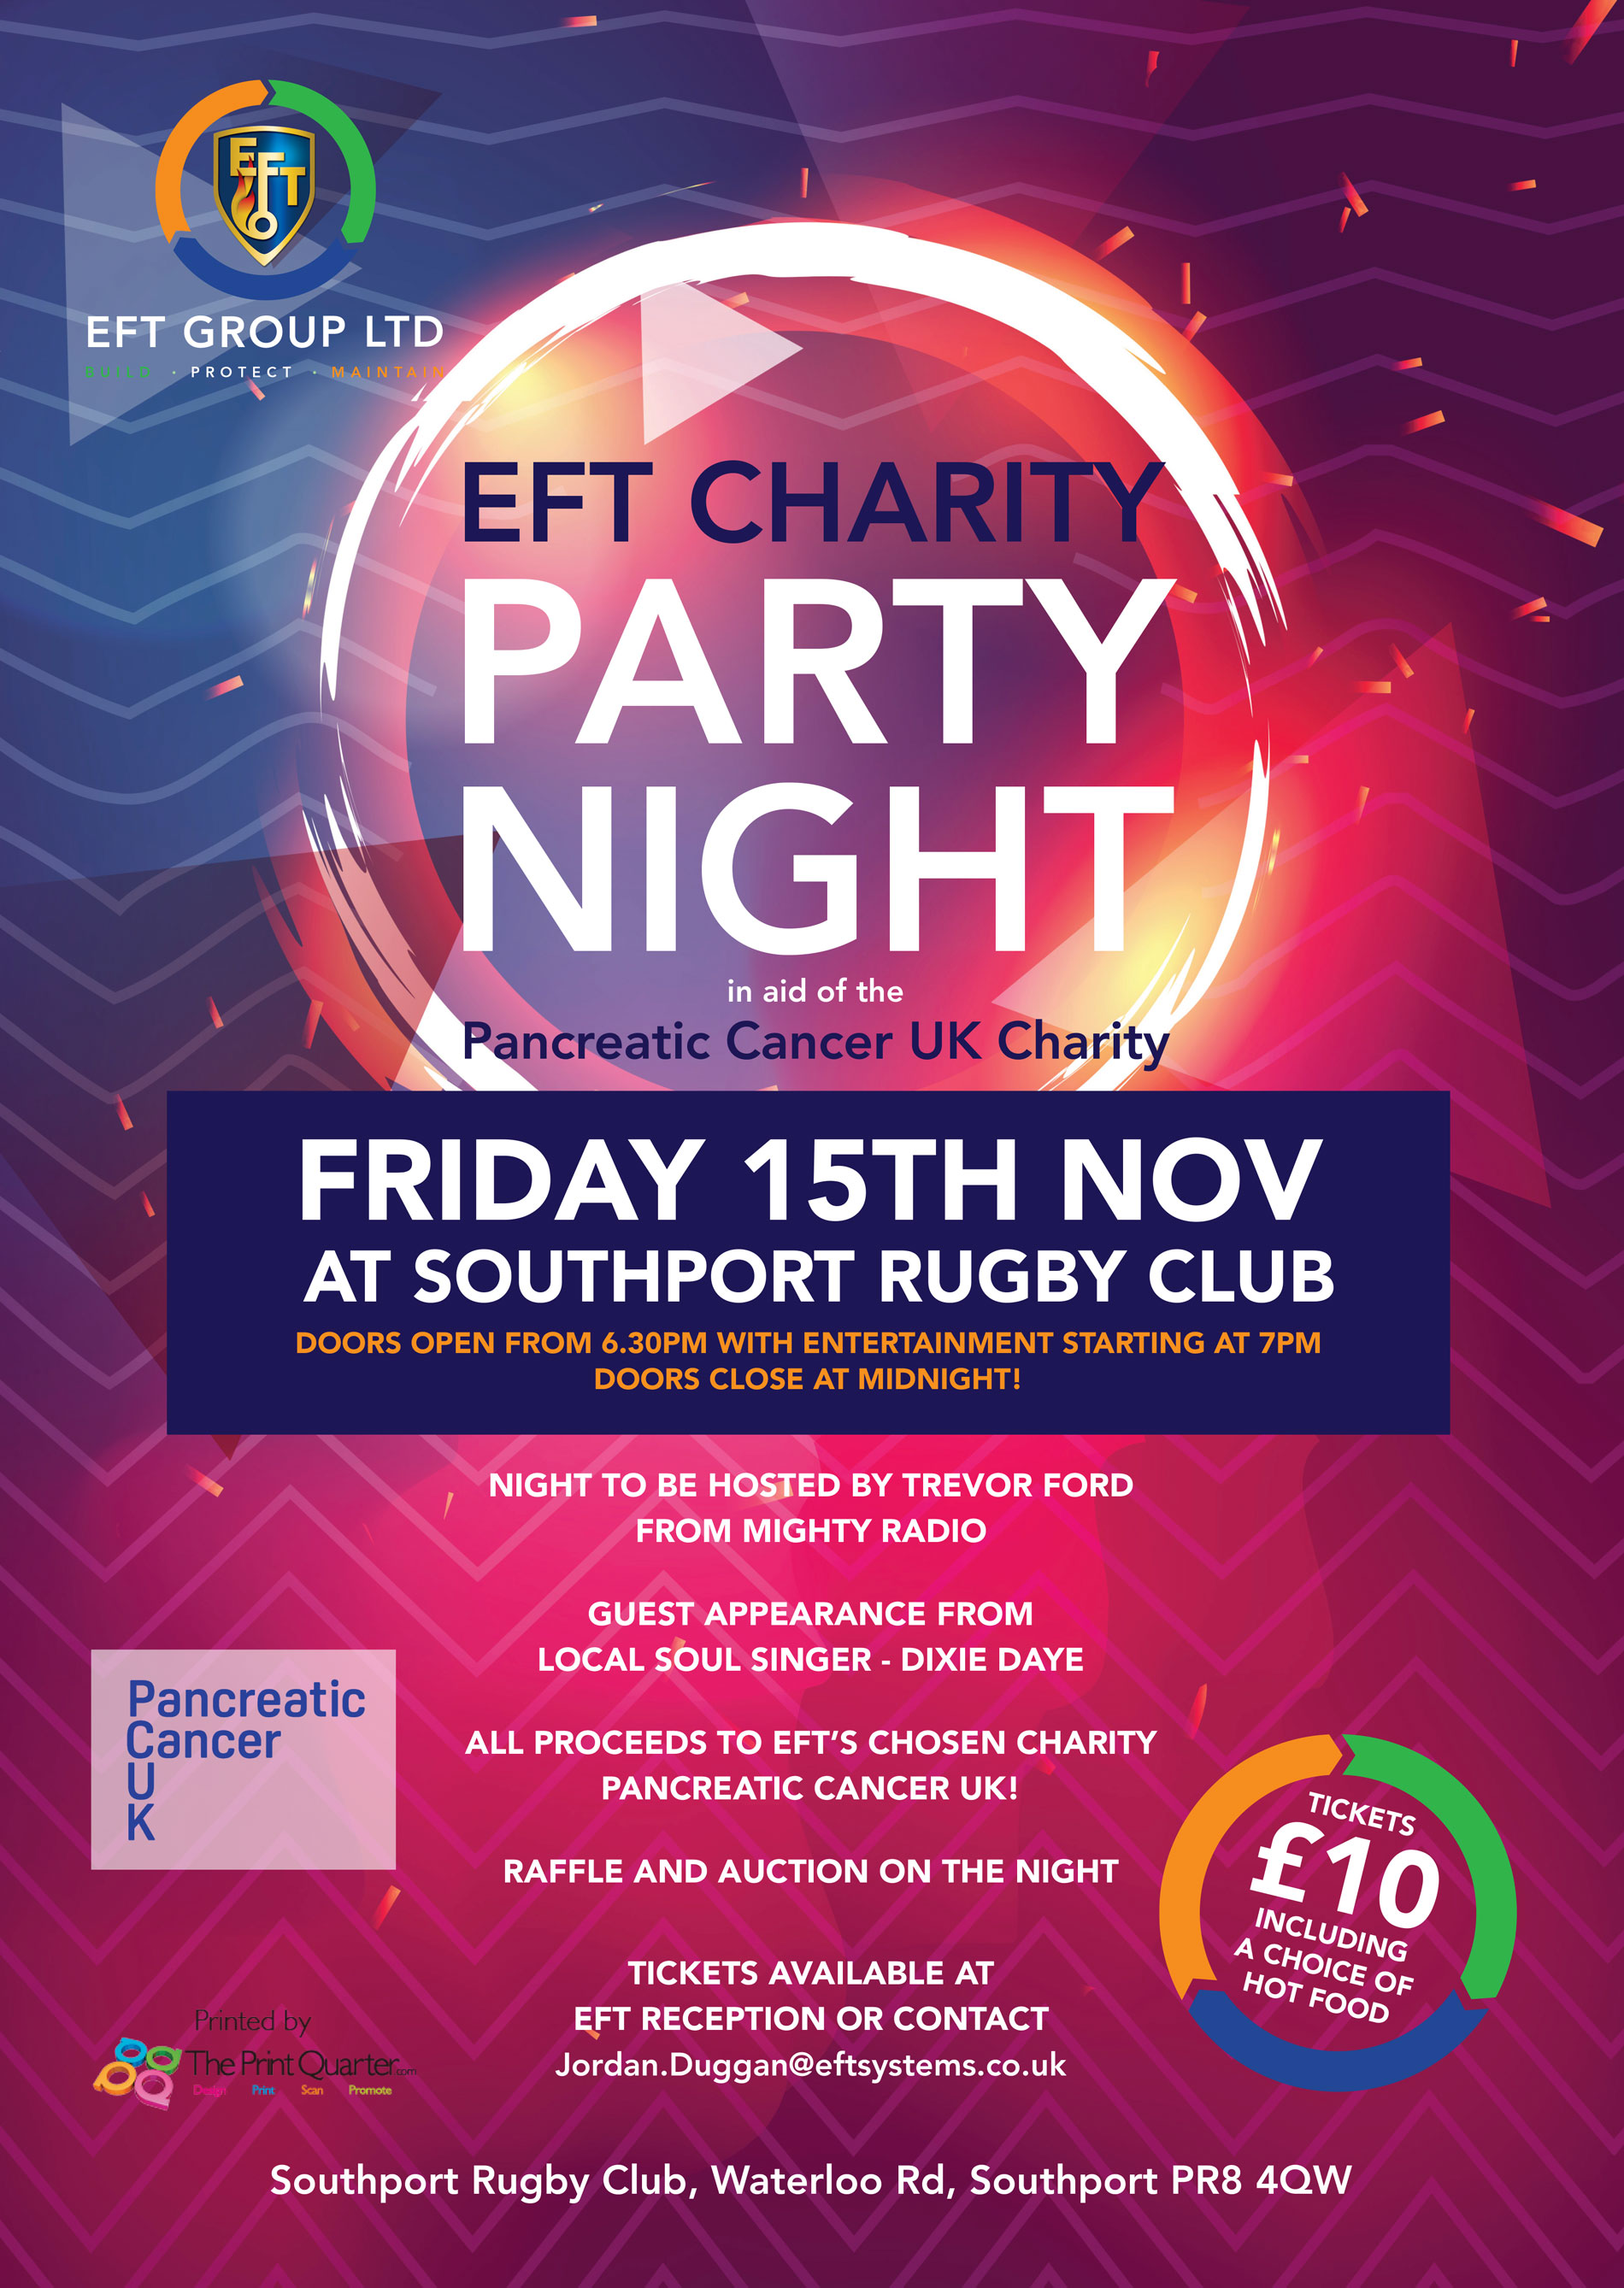 Only 3 Days To Go Until EFT Party Night – In Aid Of Pancreatic Cancer UK!